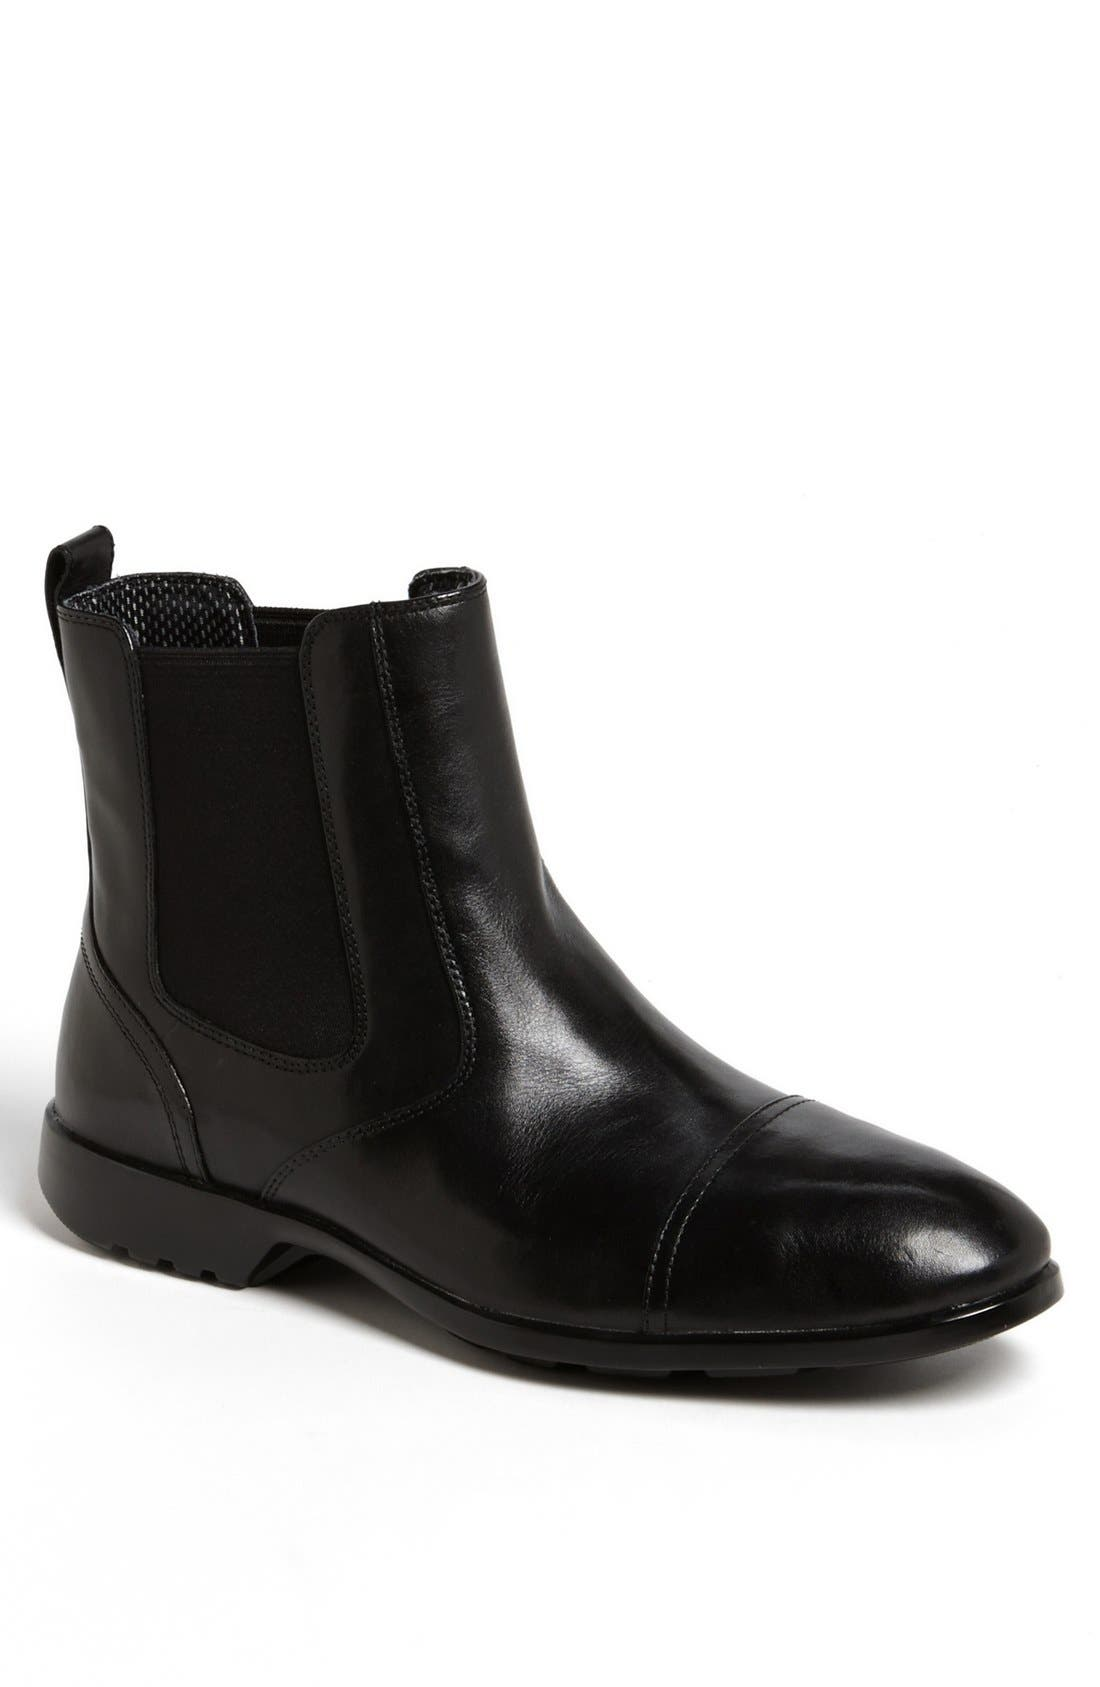 Alternate Image 1 Selected - Rockport 'Total Motion' Chelsea Boot